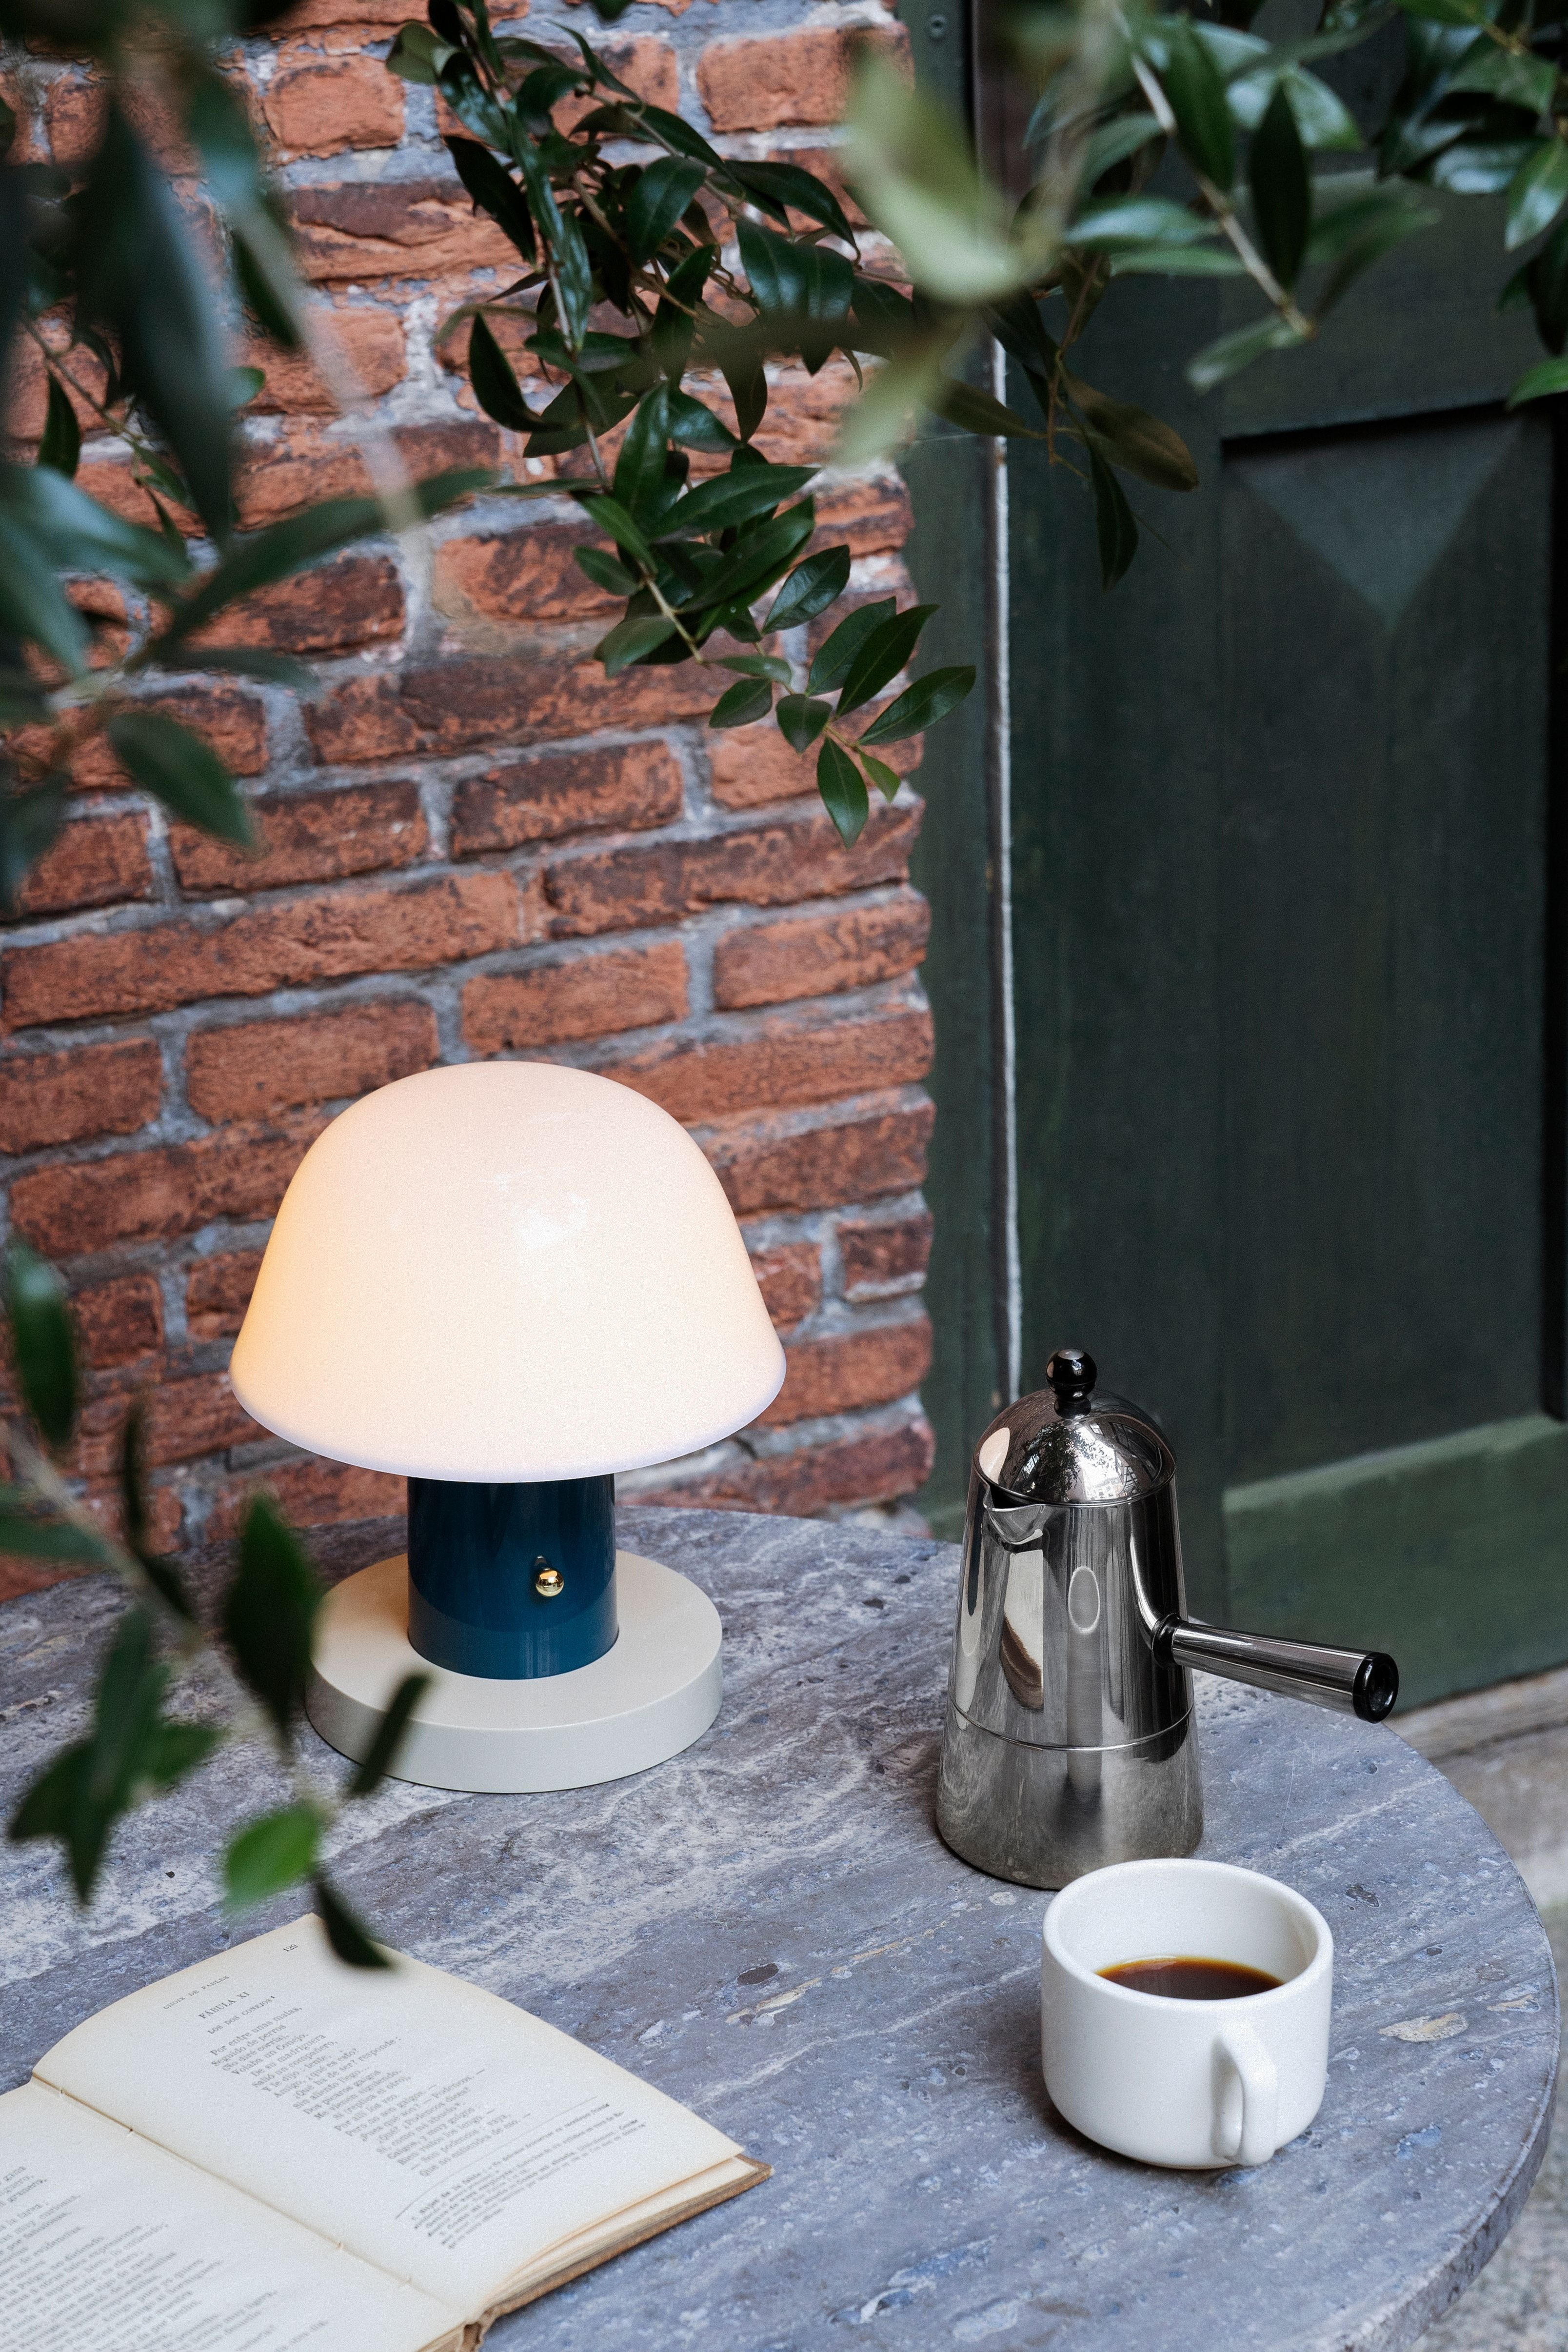 Jh27 Setago Table Lamp In 2020 Table Lamp Lamp Quirky Table Lamp